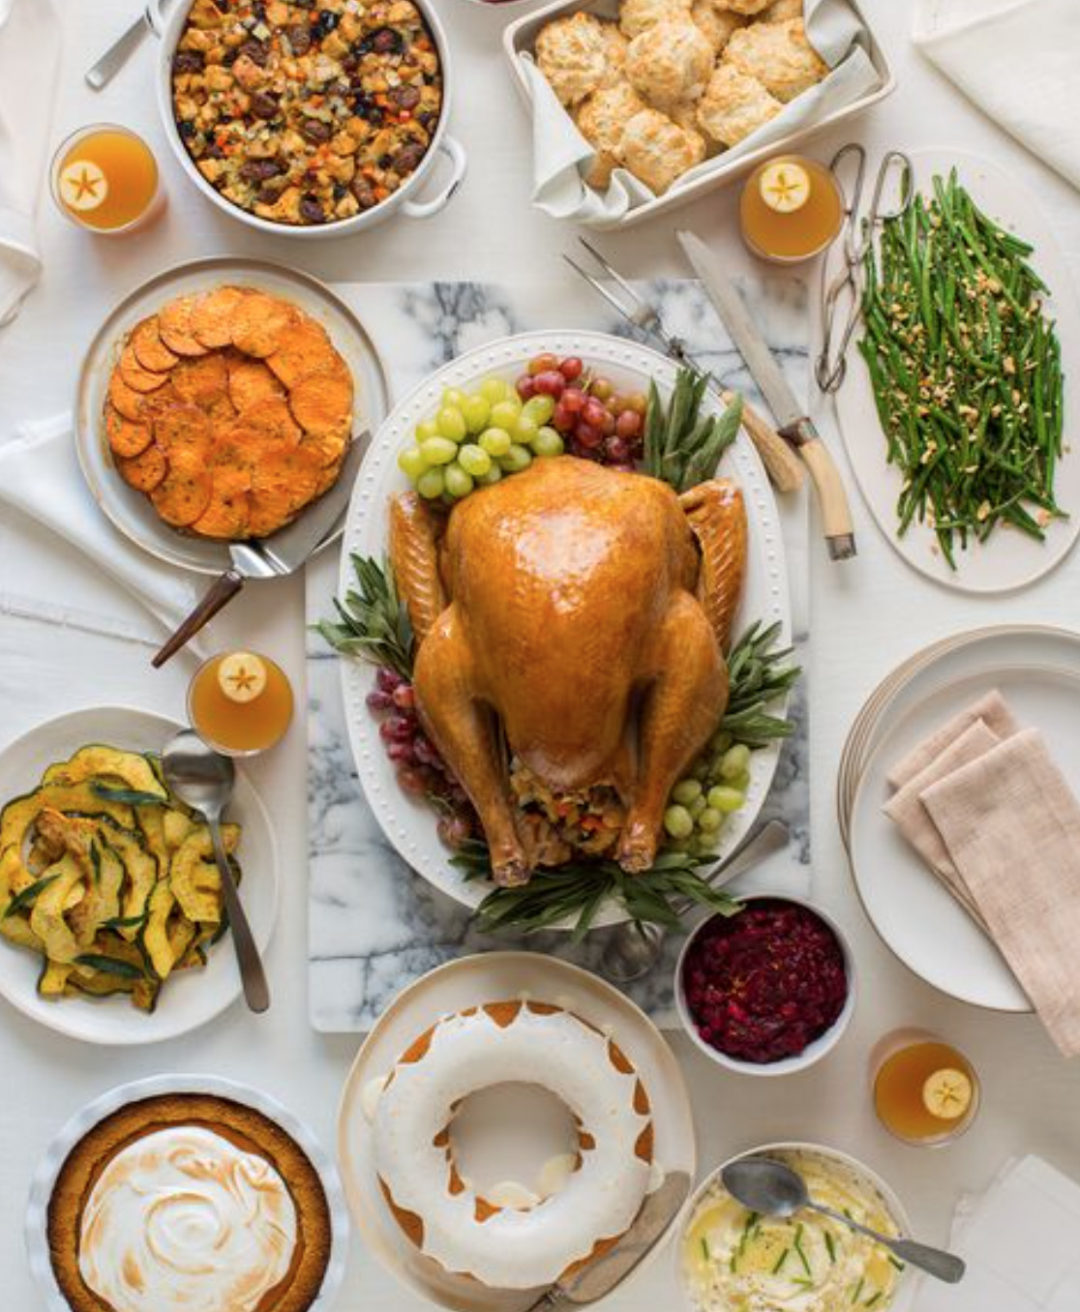 Thanksgiving Hosting Tips for The Newbie - fiftytwothursdays